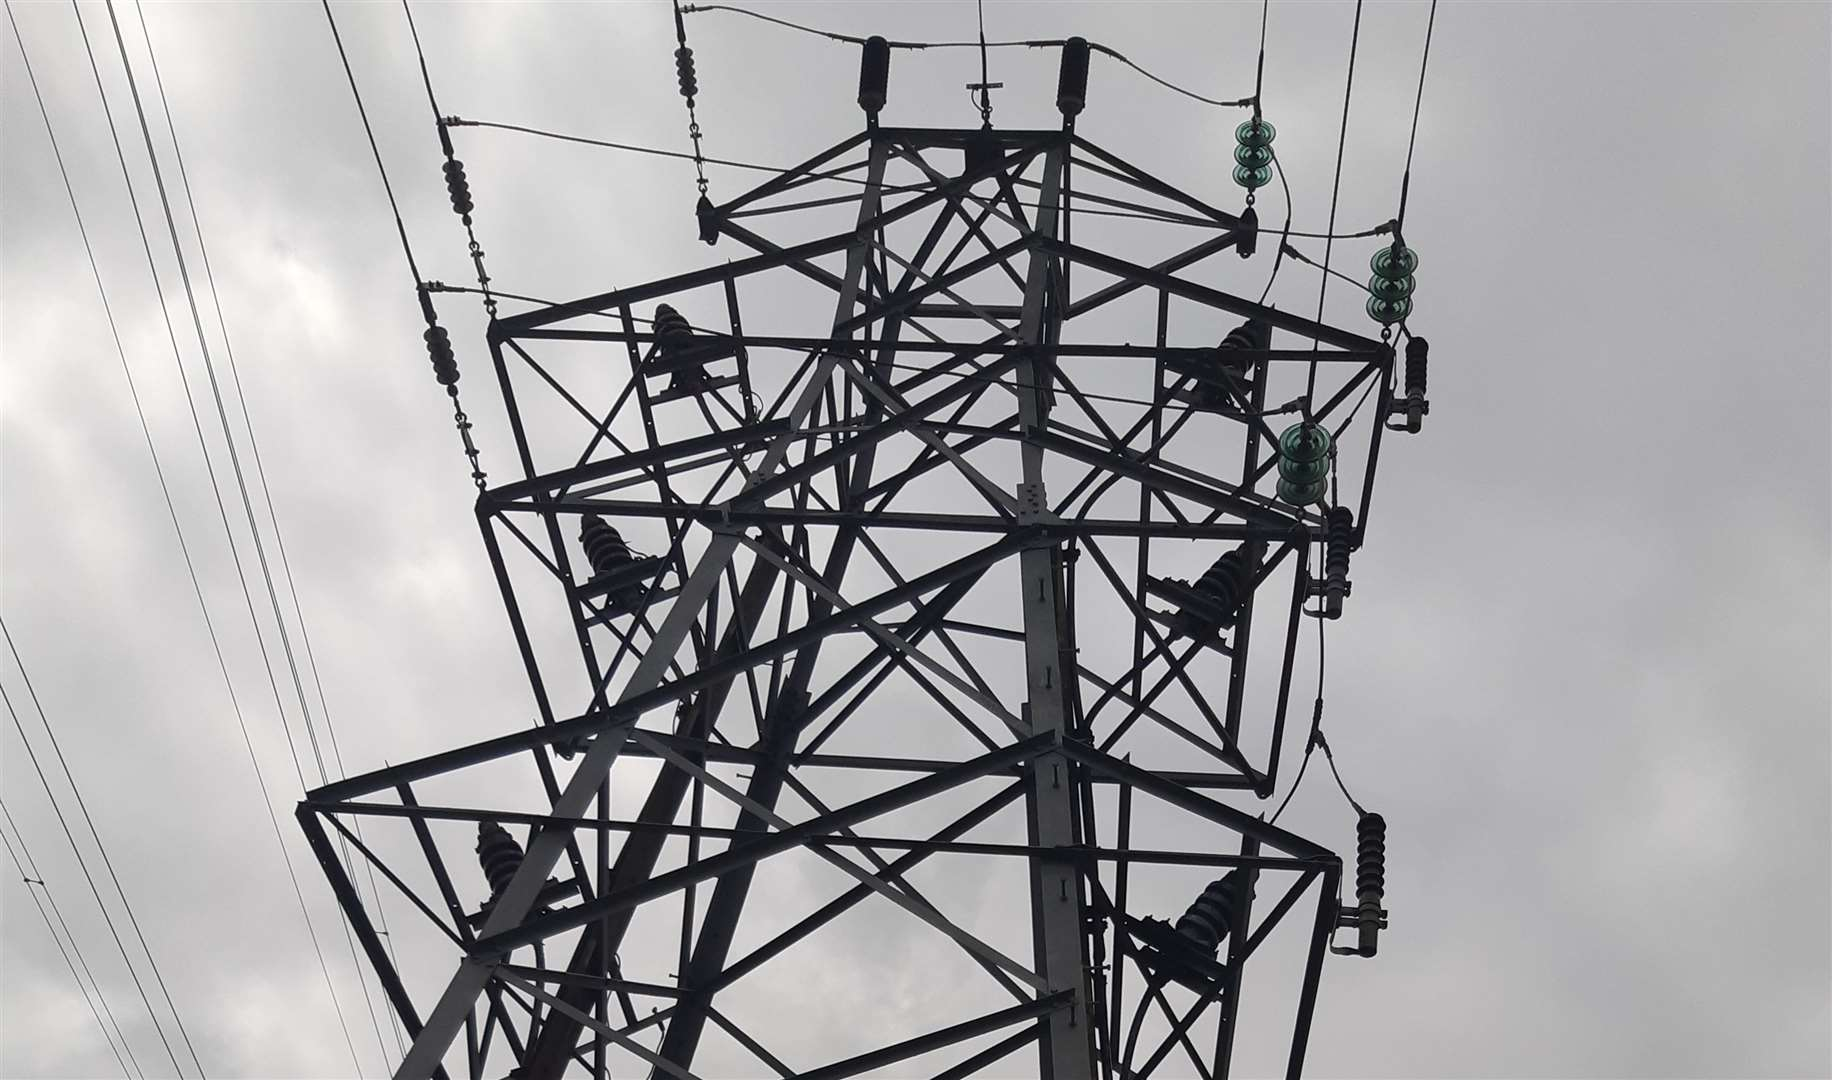 National Grid has said a lightning strike was the initial cause of a major power cut